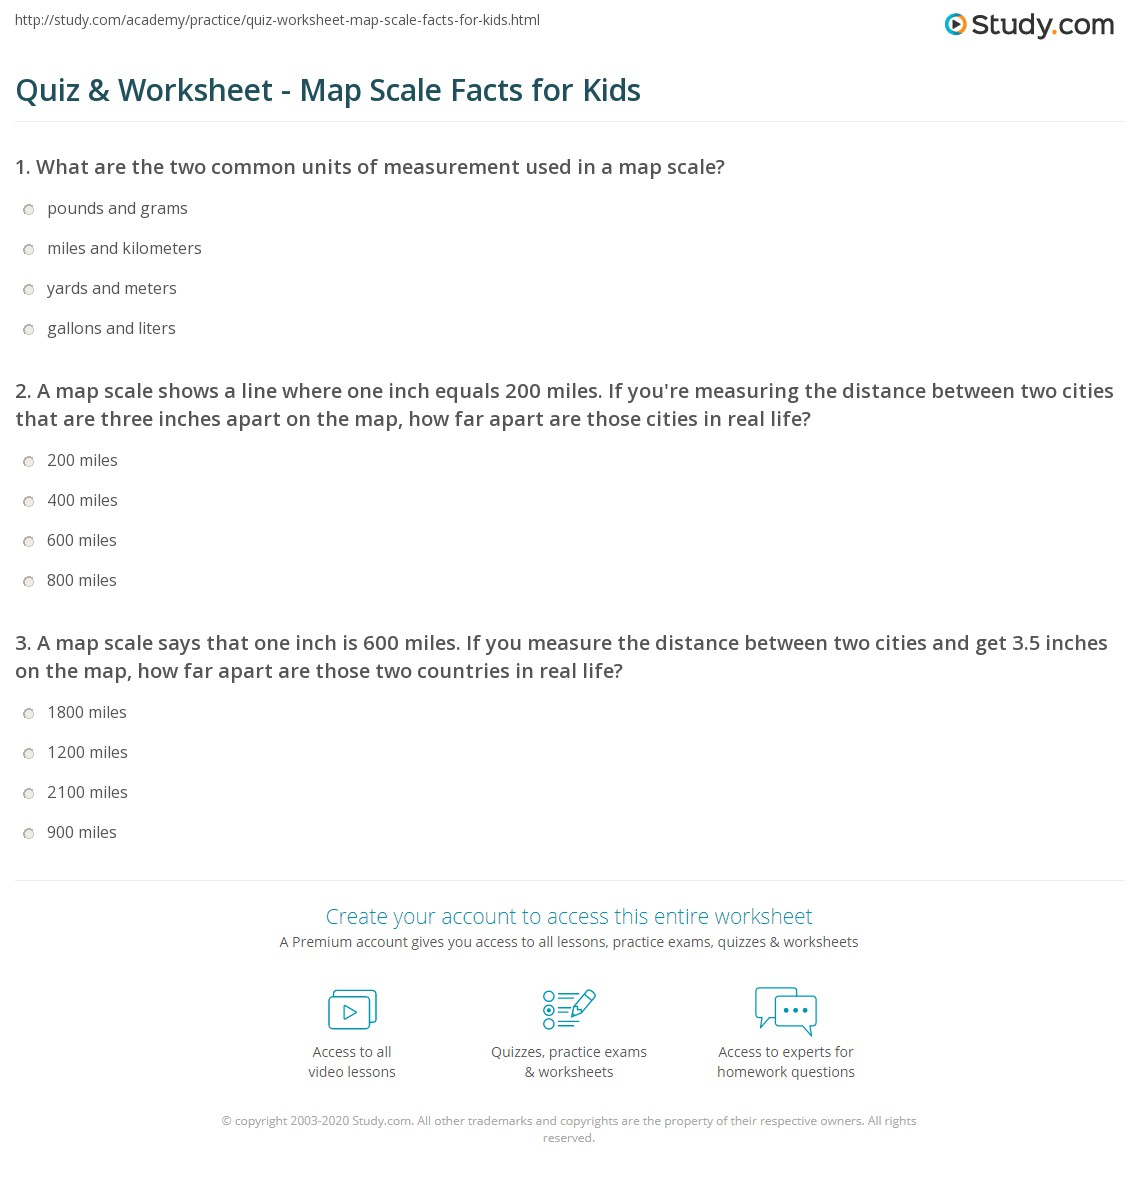 quiz worksheet map scale facts for kids. Black Bedroom Furniture Sets. Home Design Ideas